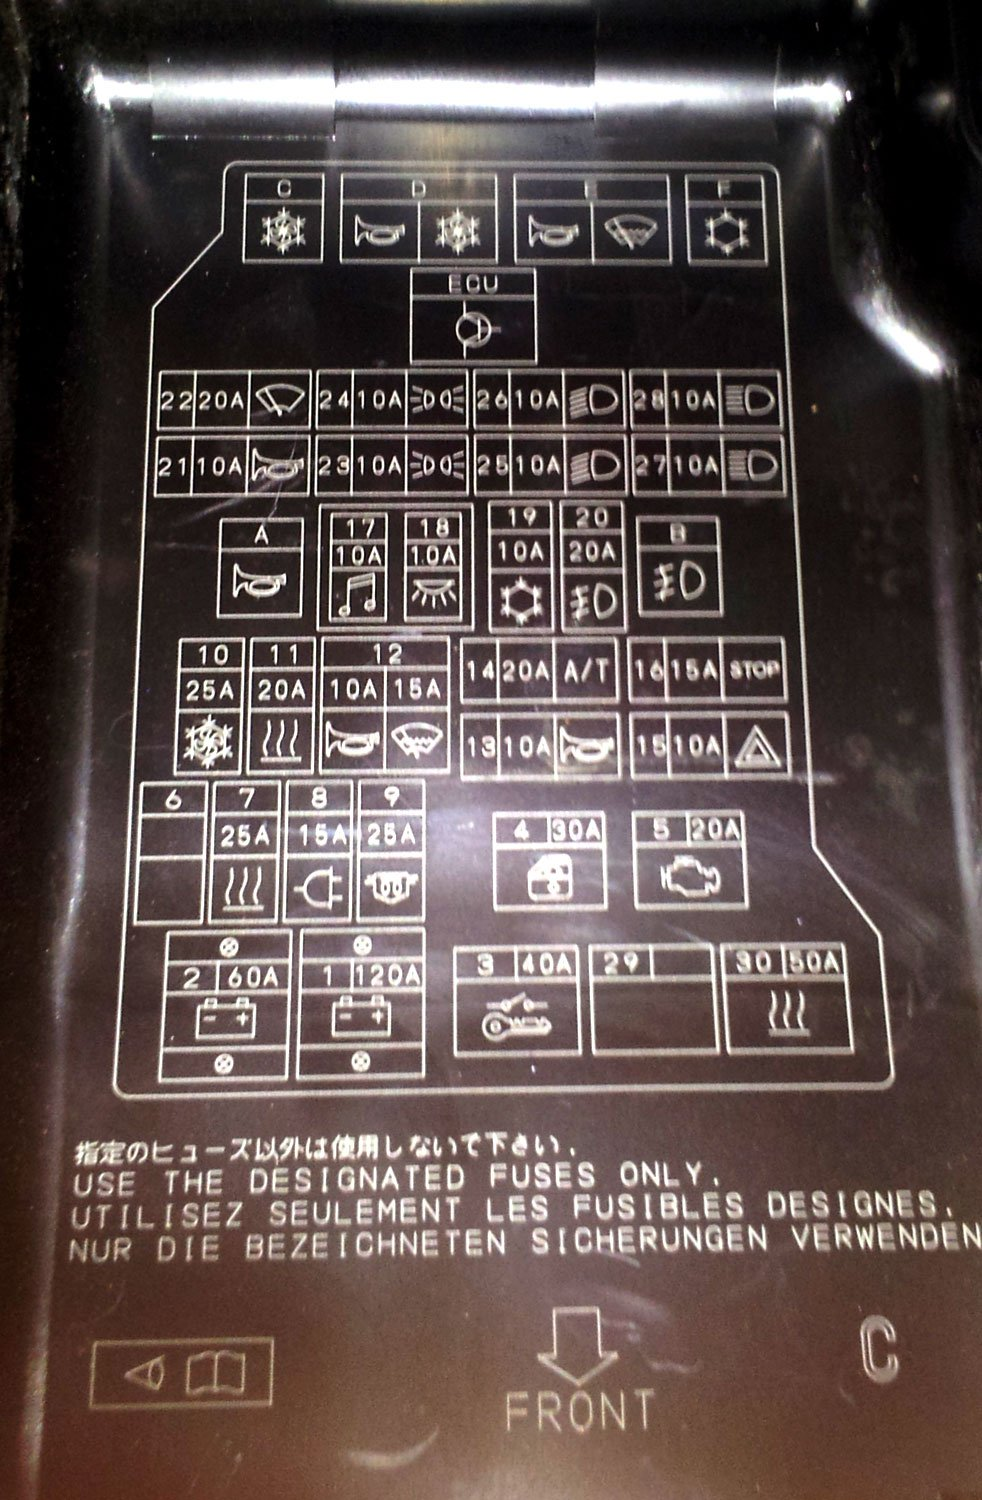 Mitsubishi Pajero Fuse Box Diagram Shogun 99 Montero My Front Dash And Center Console Cigarette Lighter Plugs Are Not 1995